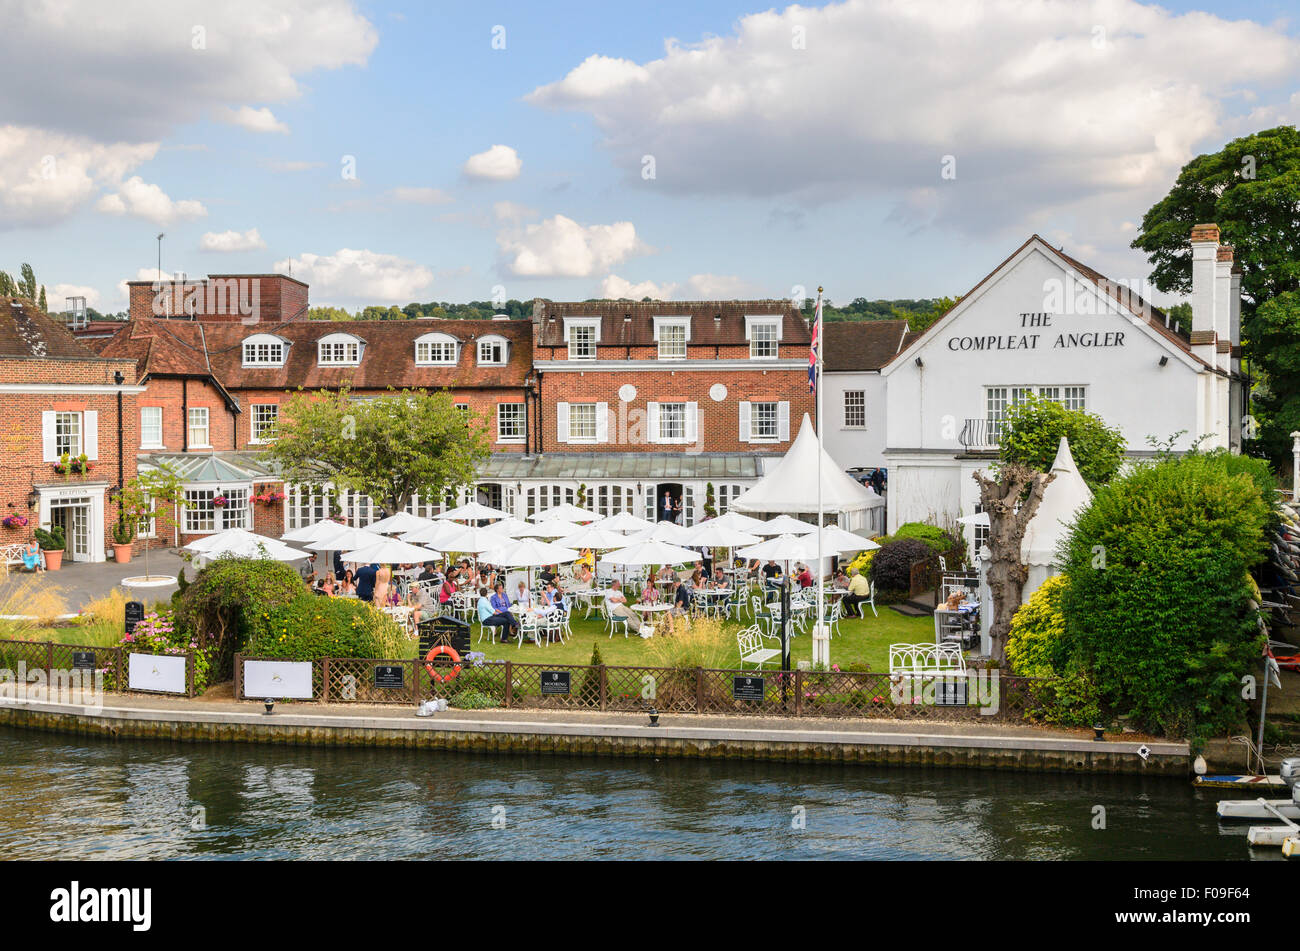 The Compleat Angler Restaurant by the River Thames, Marlow, Buckinghamshire, England, UK. - Stock Image